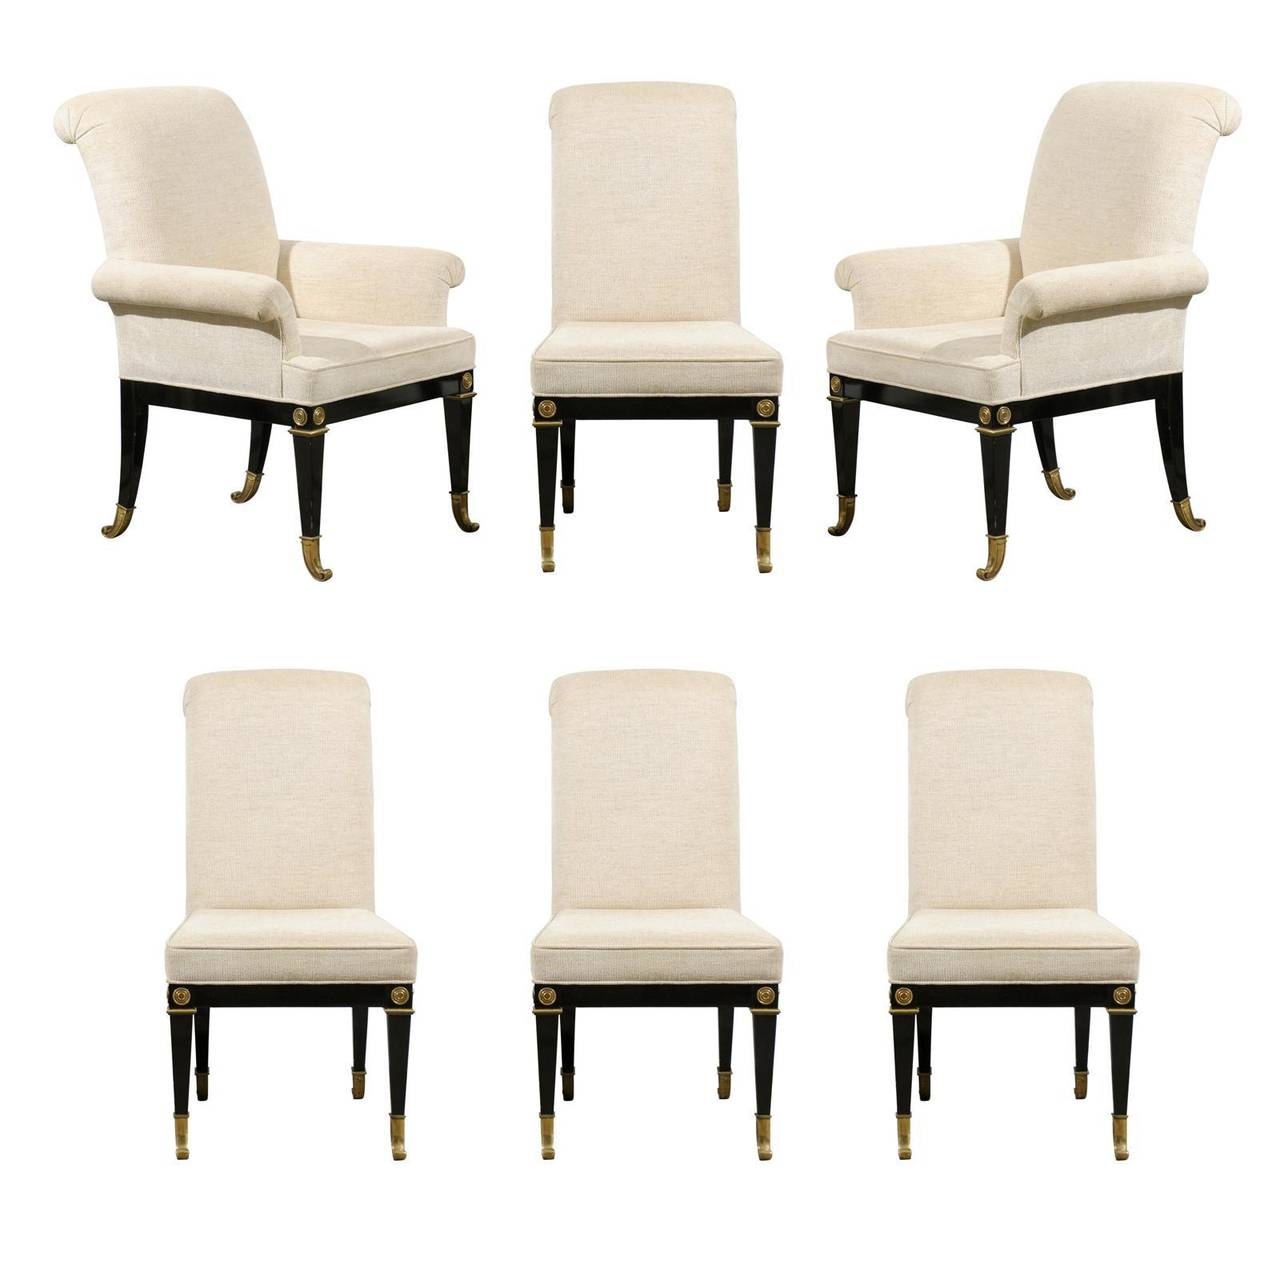 Black Lacquer Dining Room Chairs: Set Of Six Dining Chairs By Master Craft In Black Lacquer